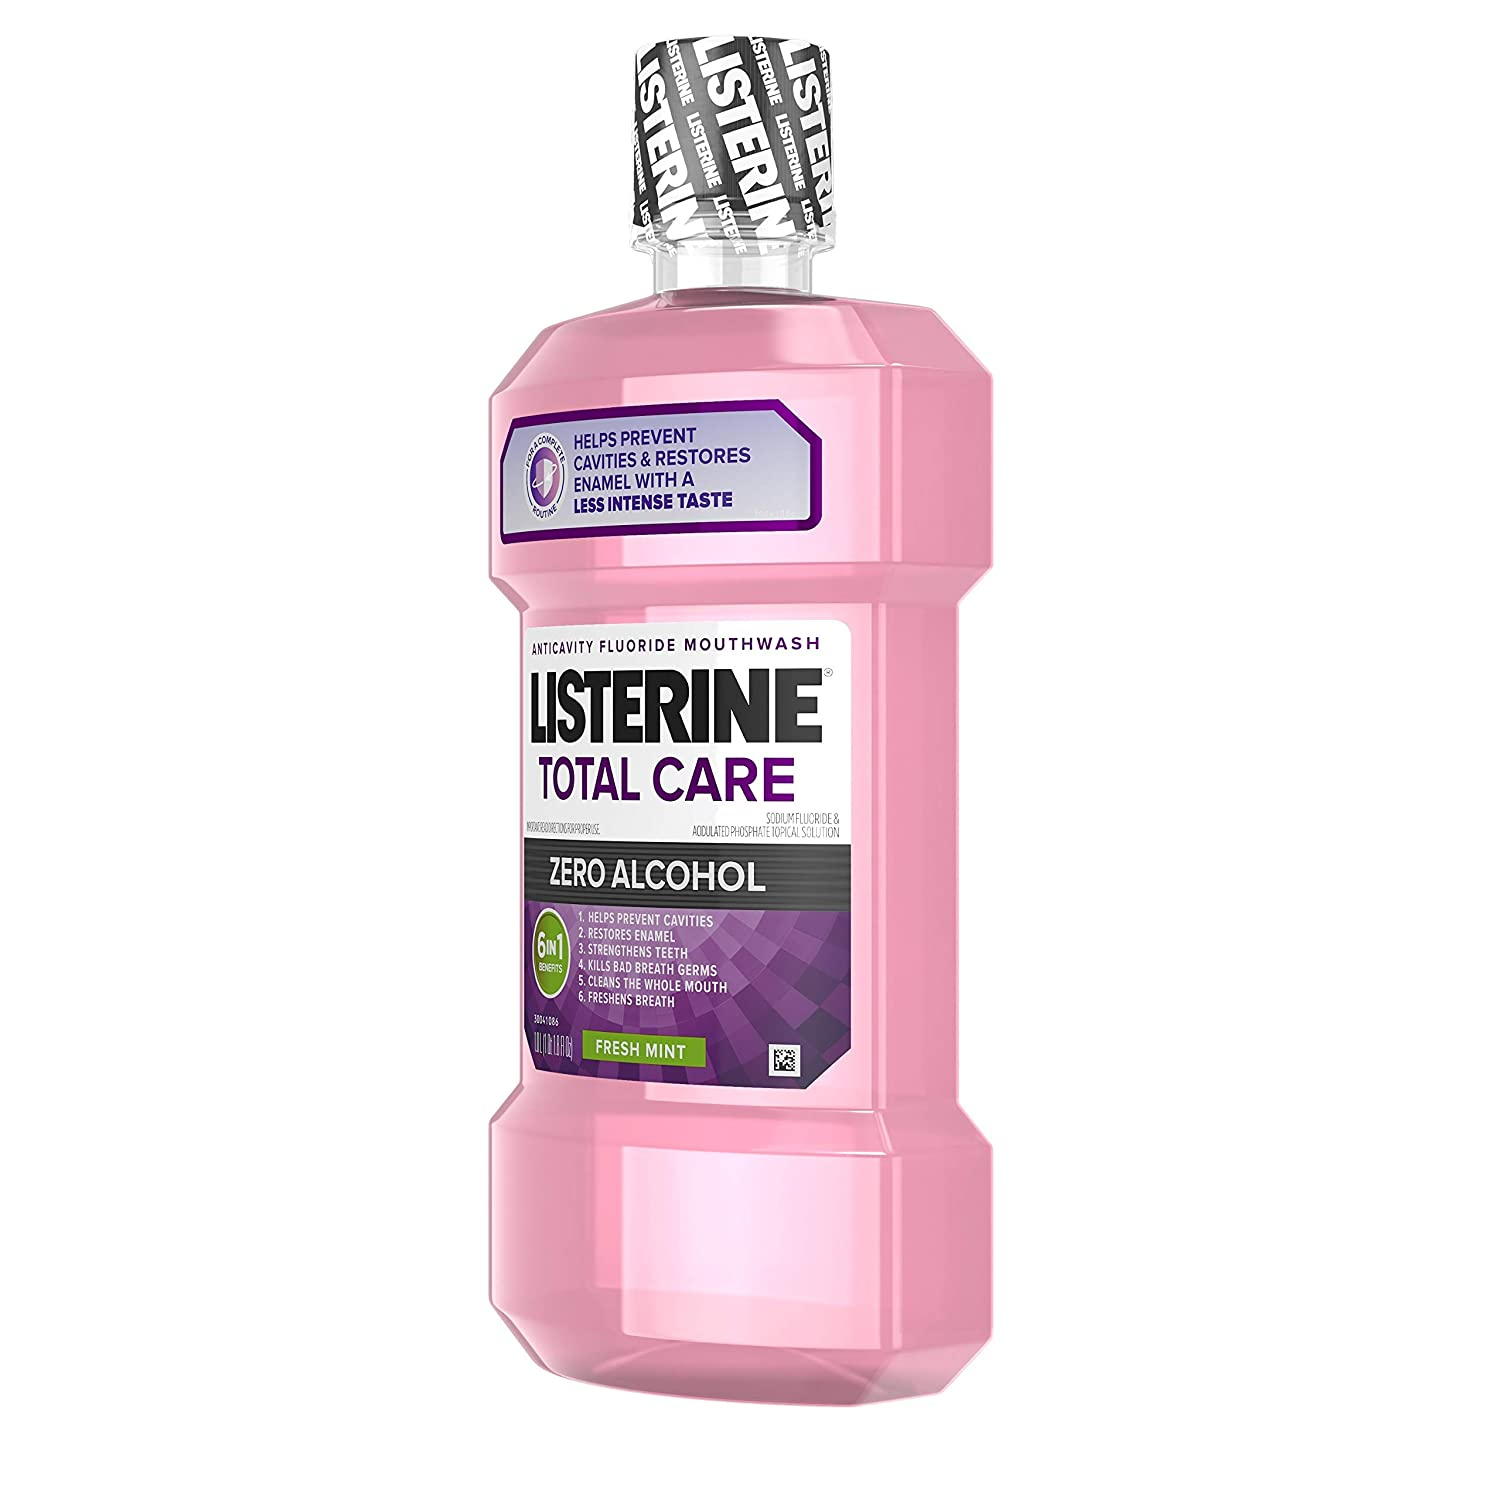 Listerine Total Care Alcohol-Free Anticavity Mouthwash, 6 Benefit Fluoride Mouthwash for Bad Breath and Enamel Strength, Fresh Mint Flavor, Twin Pack, 2 x 1 L: Beauty